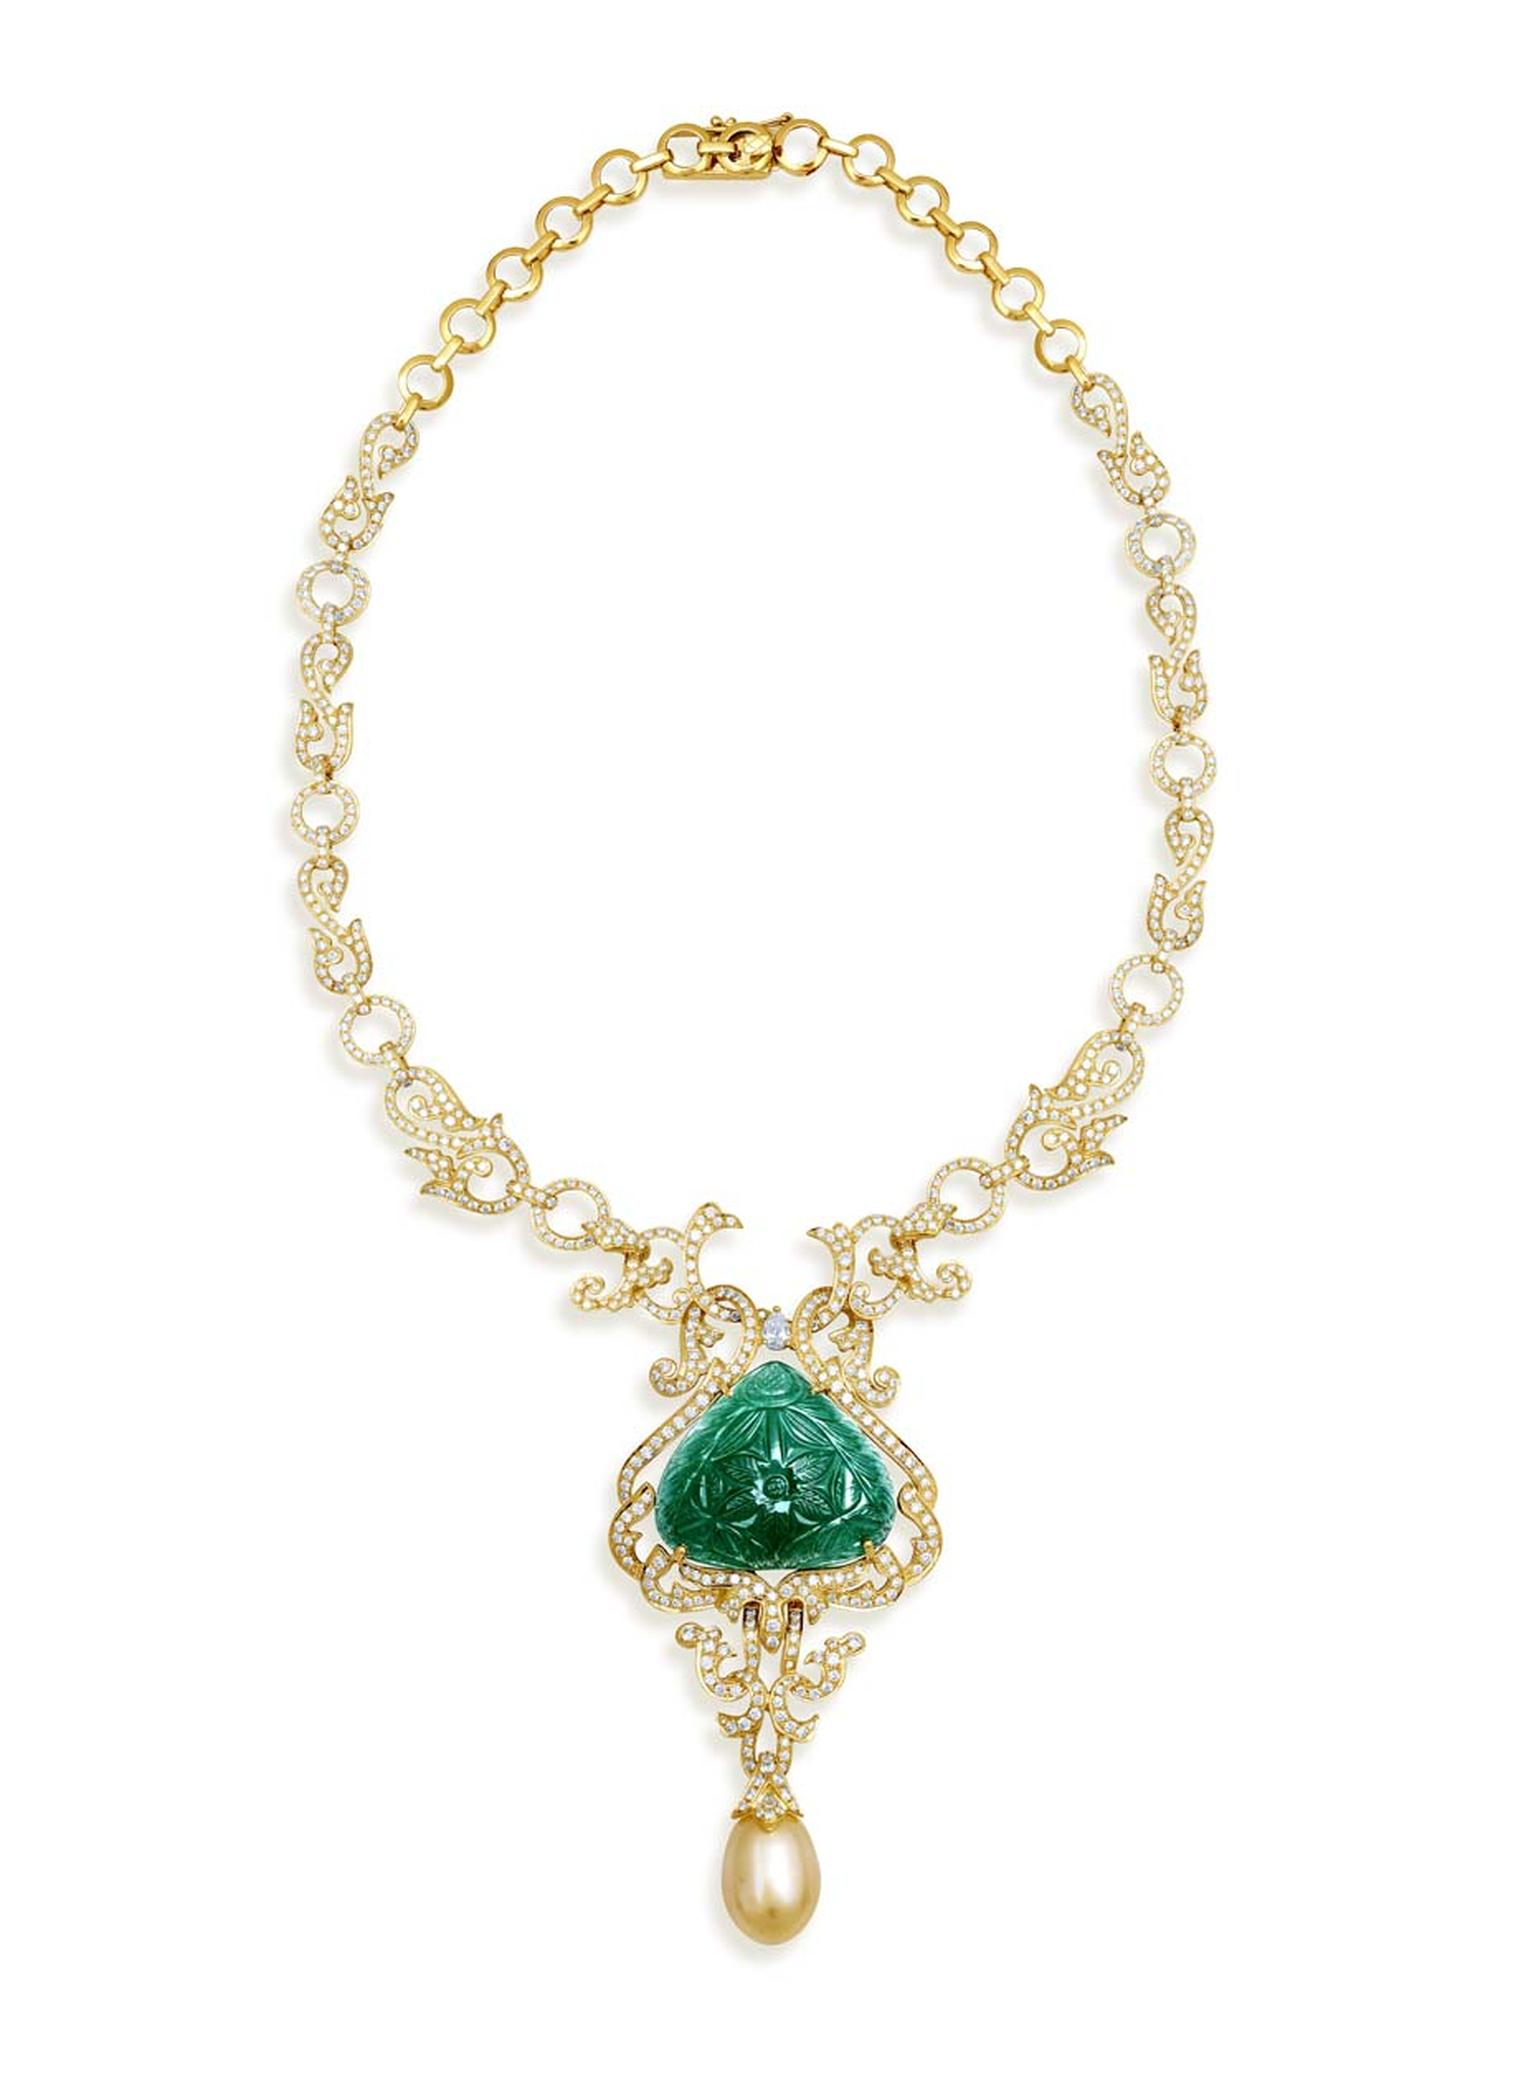 Farah Khan gold necklace with a large central carved emerald, South Sea pearl drops and diamonds, inspired by the grandeur of the Indian Maharanis.